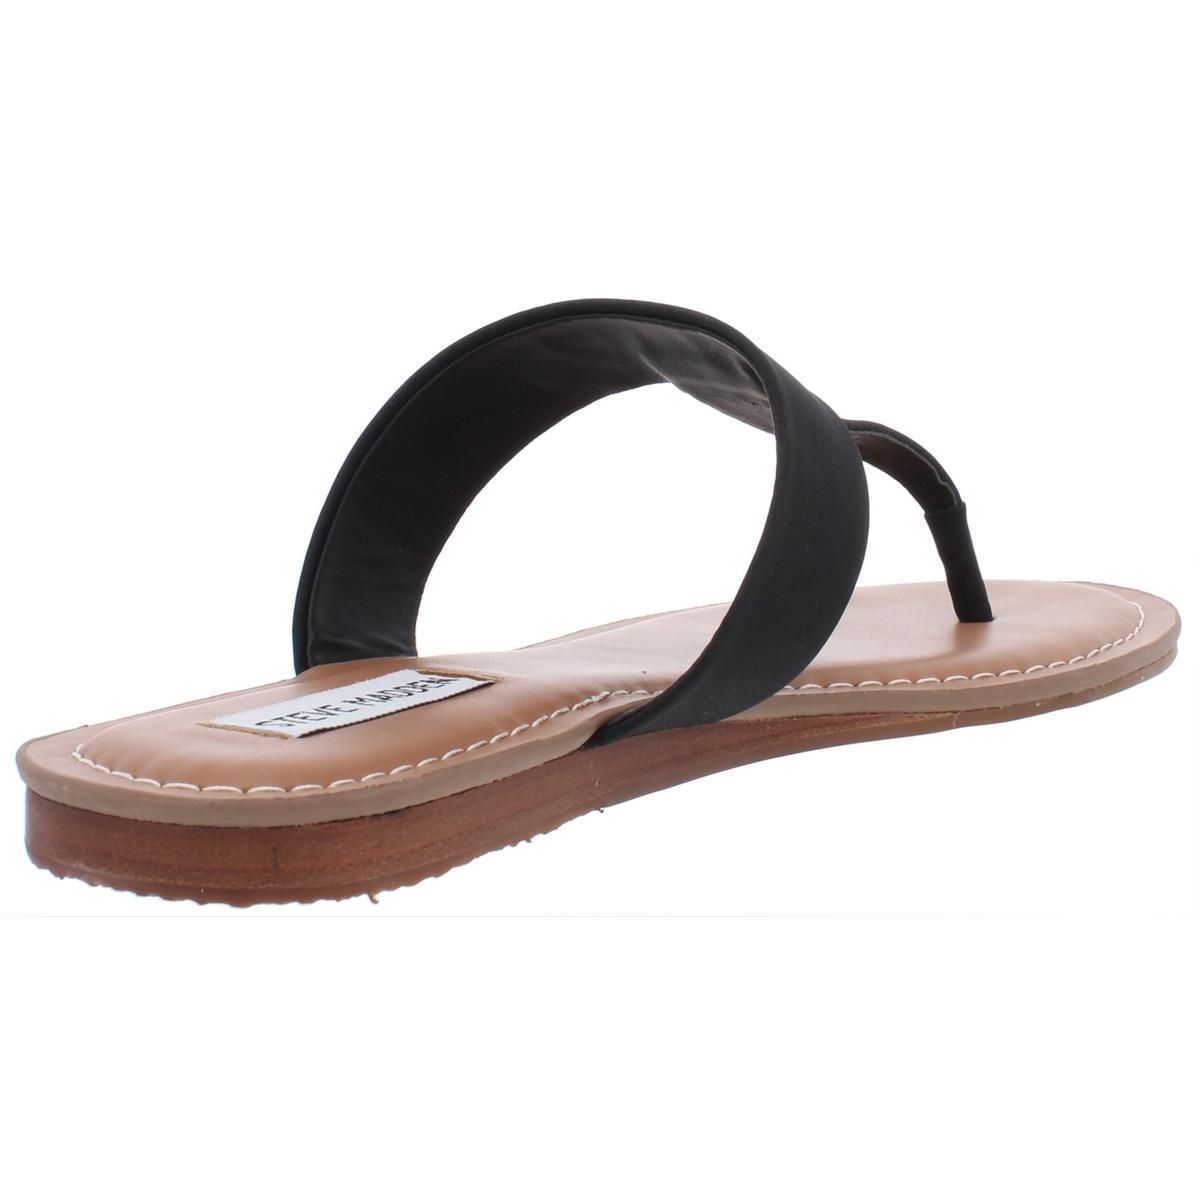 Steve-Madden-Womens-Vacay-Faux-Leather-Thong-Sandals-Flats-Shoes-BHFO-0099 thumbnail 4